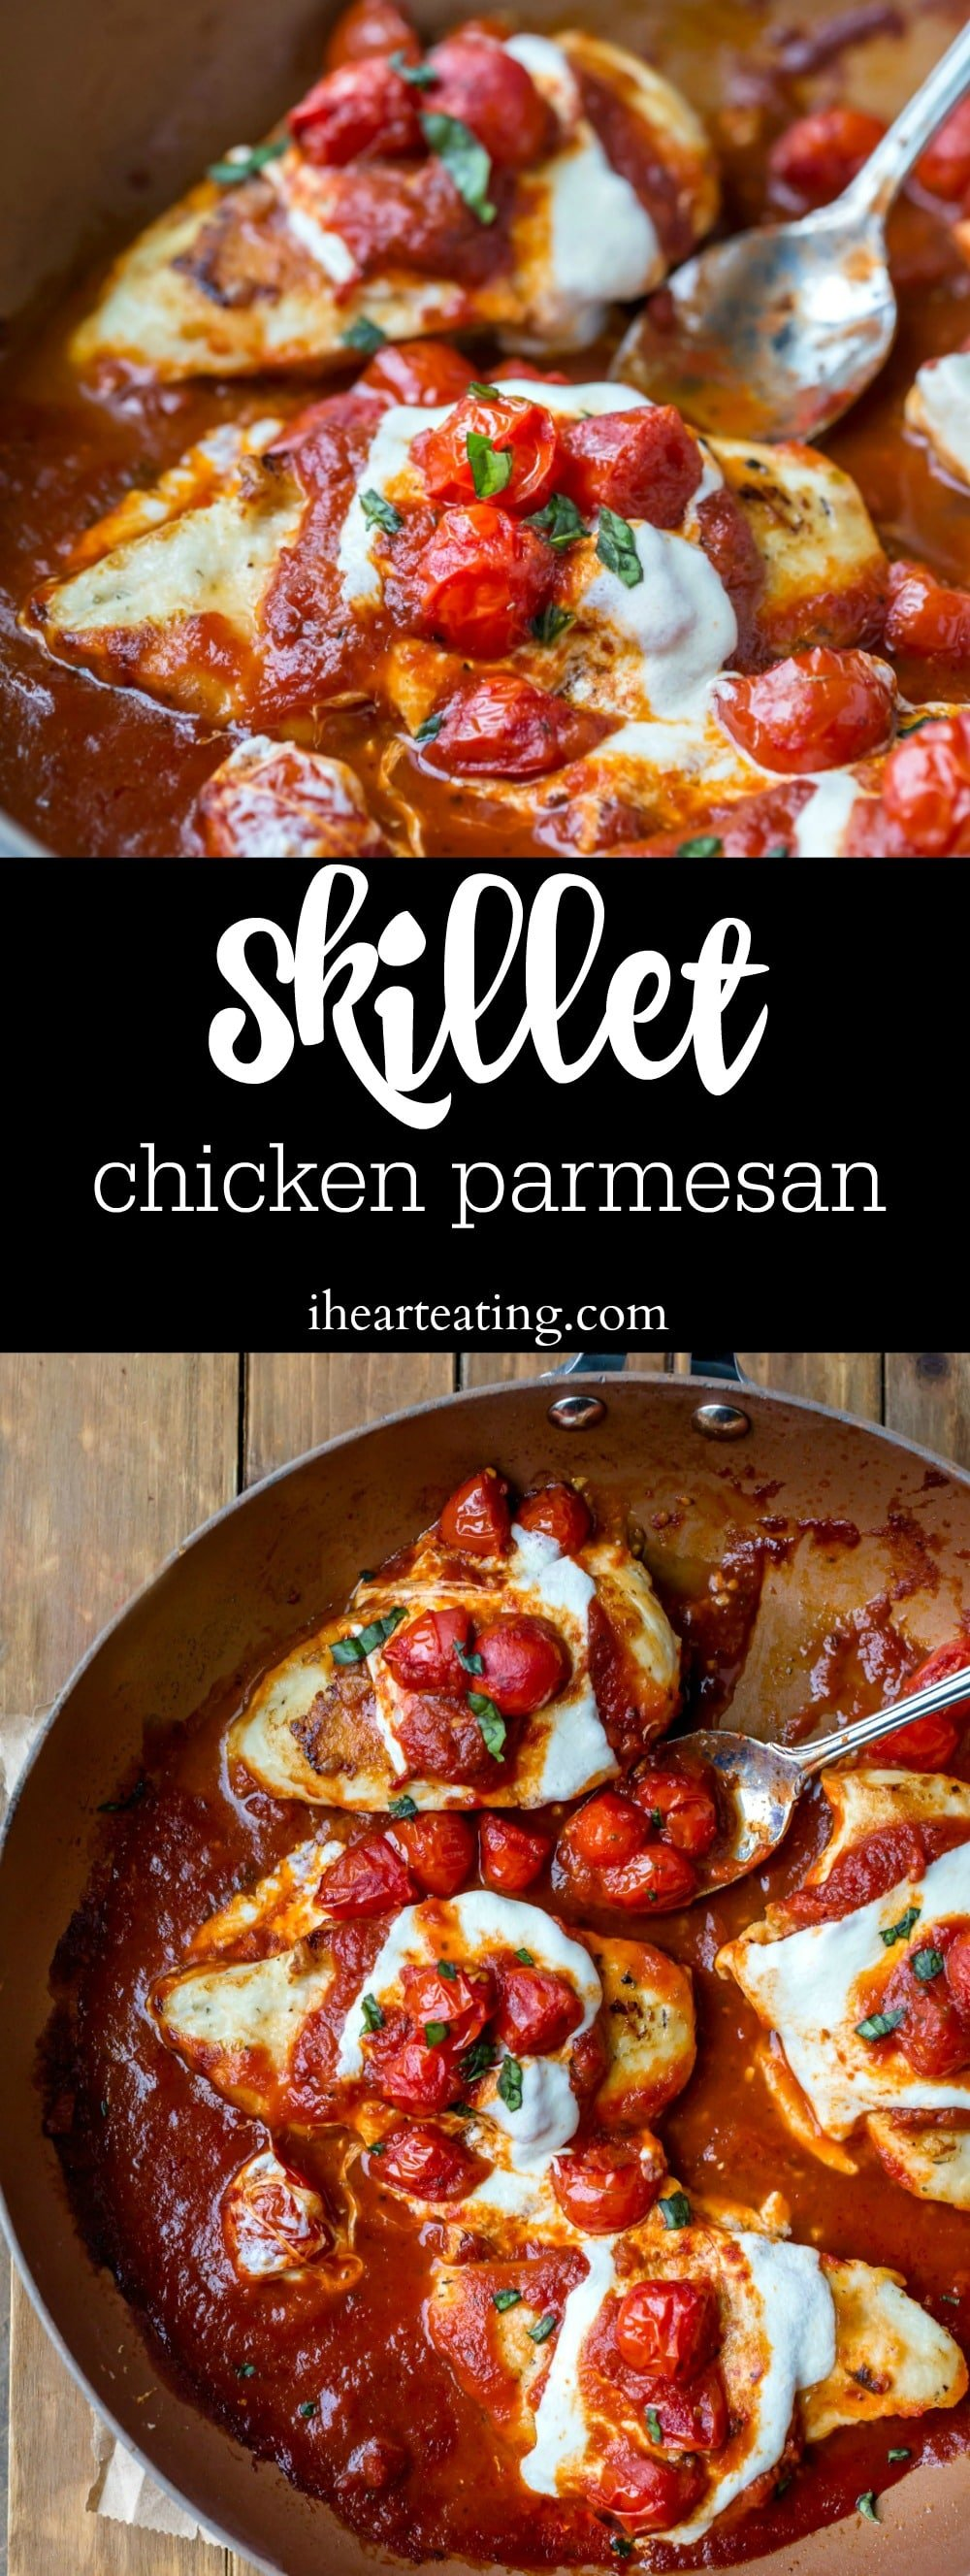 Skillet Chicken Parmesan Recipe is a skinny chicken parmesan dinner recipe that is ready in less than 30 minutes.